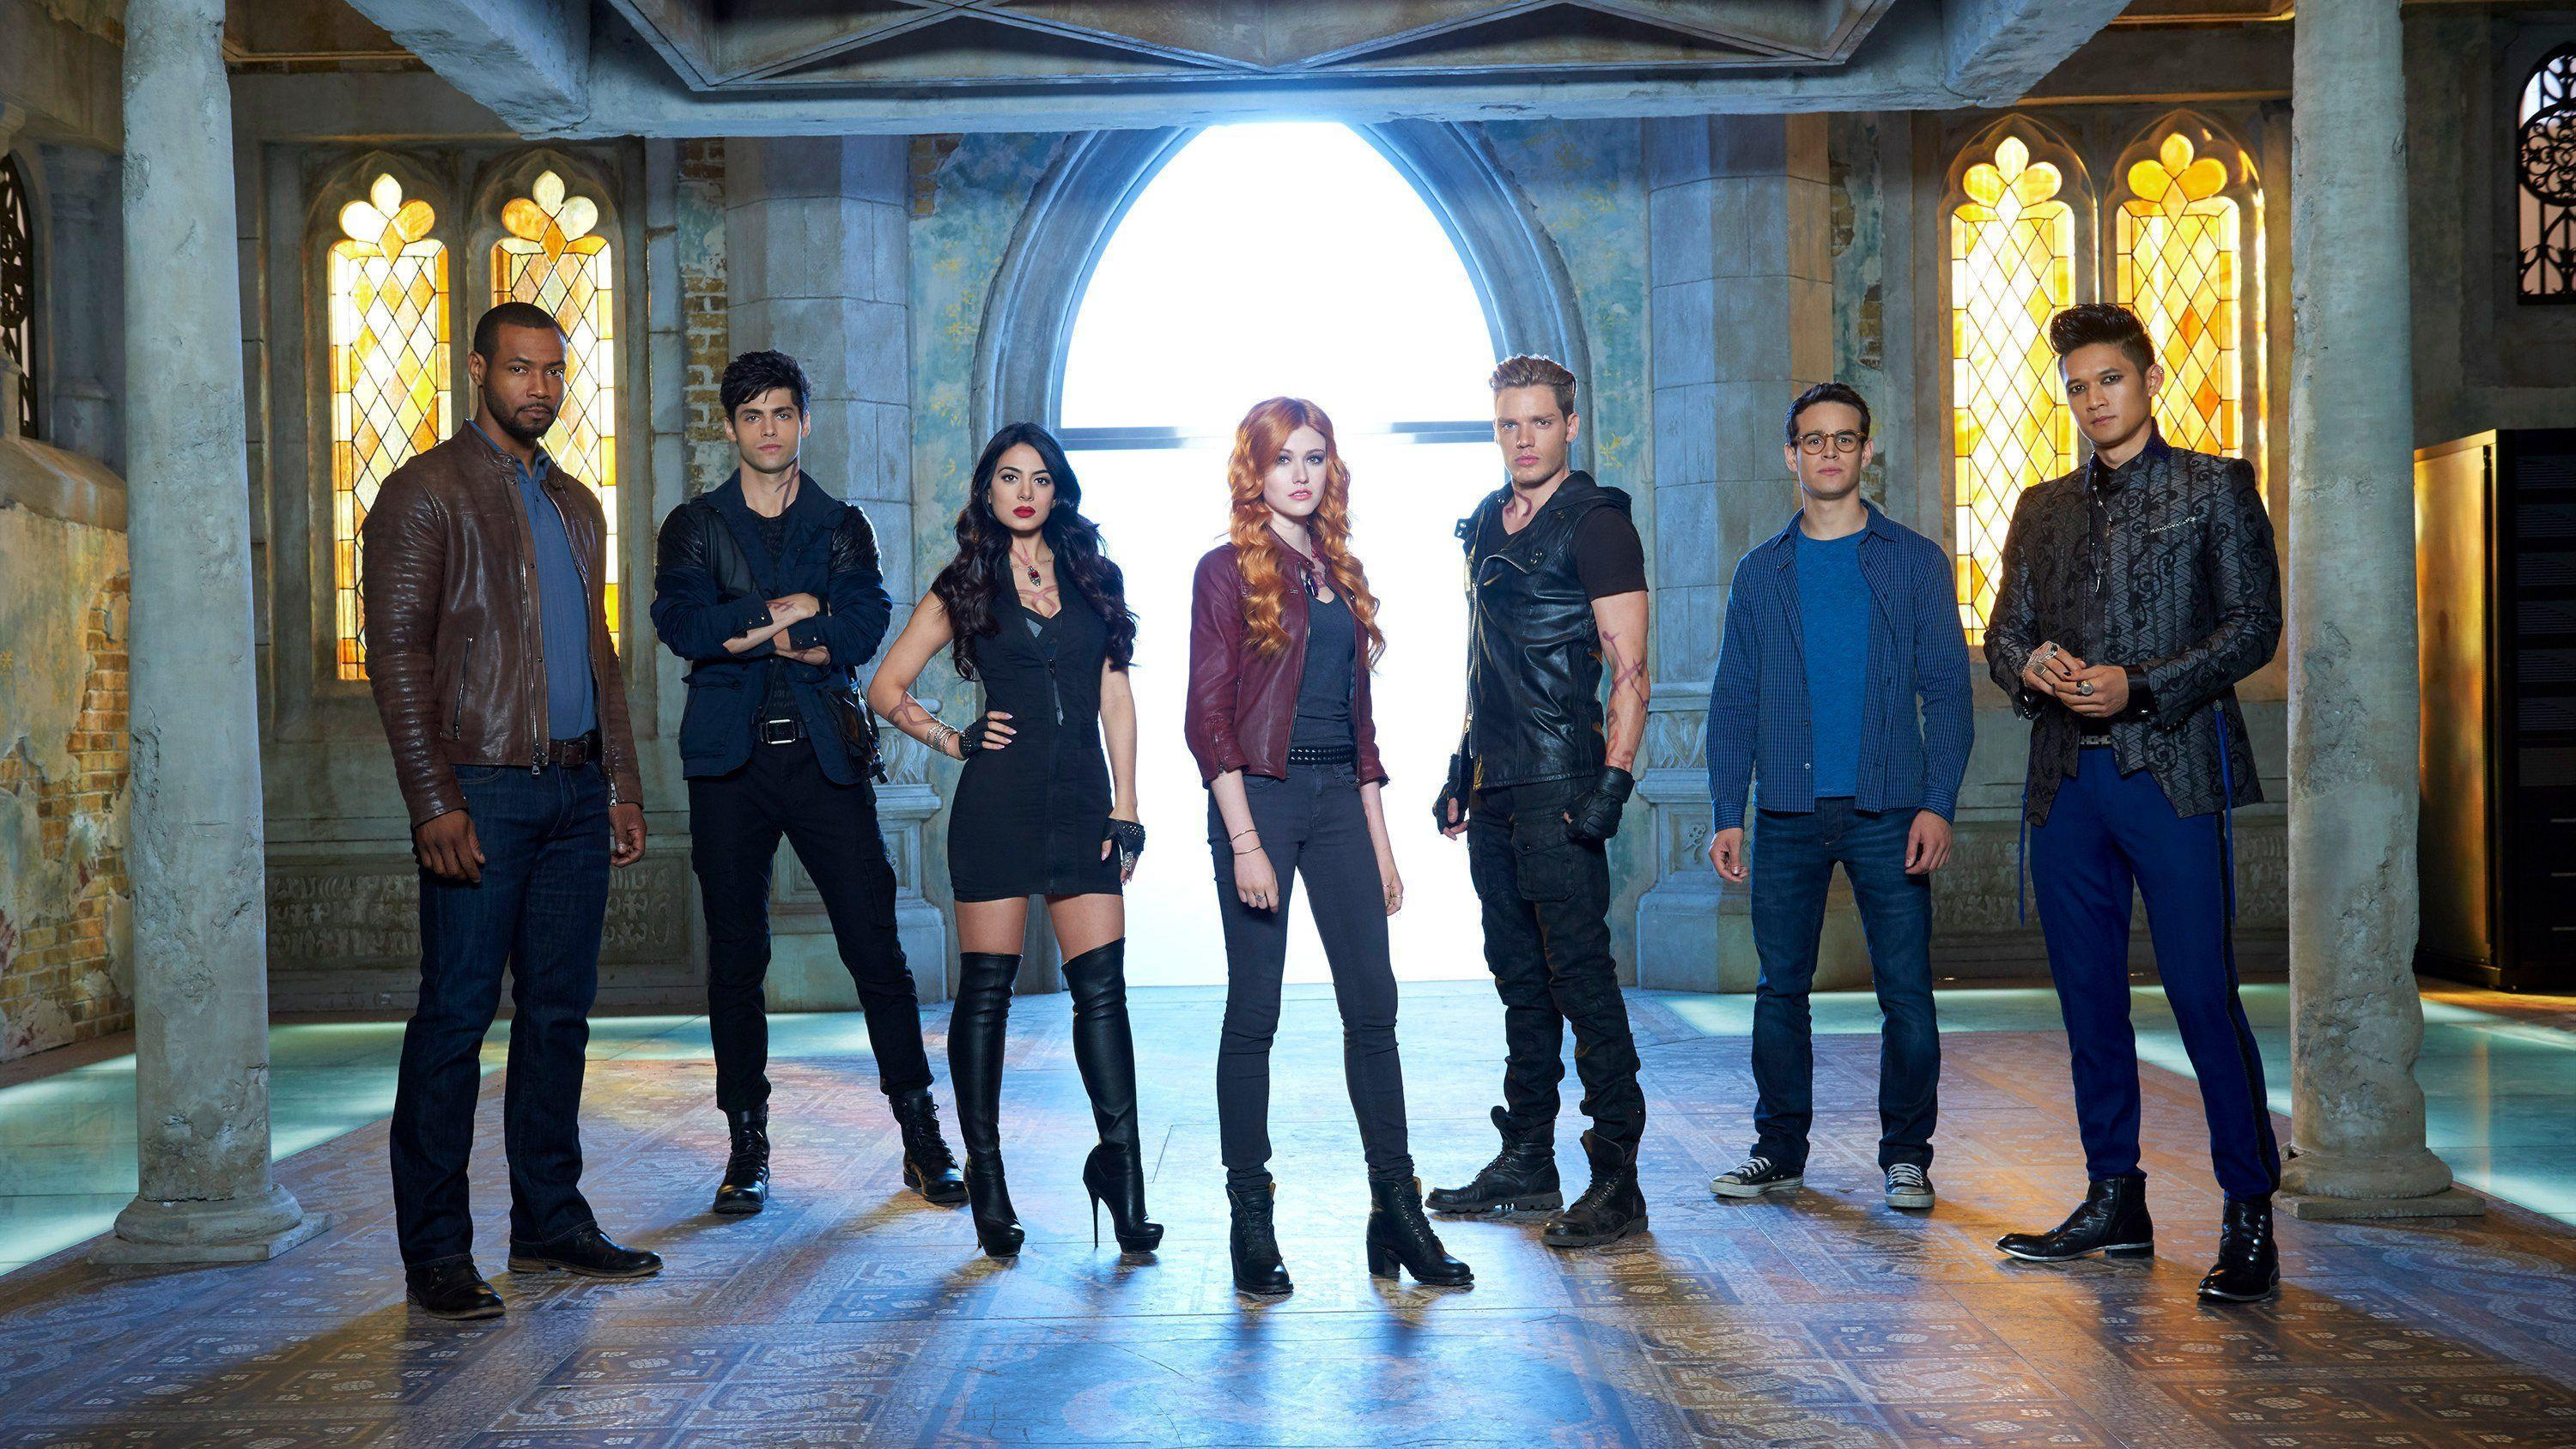 Shadowhunters Wallpaper | Zoni Wallpapers